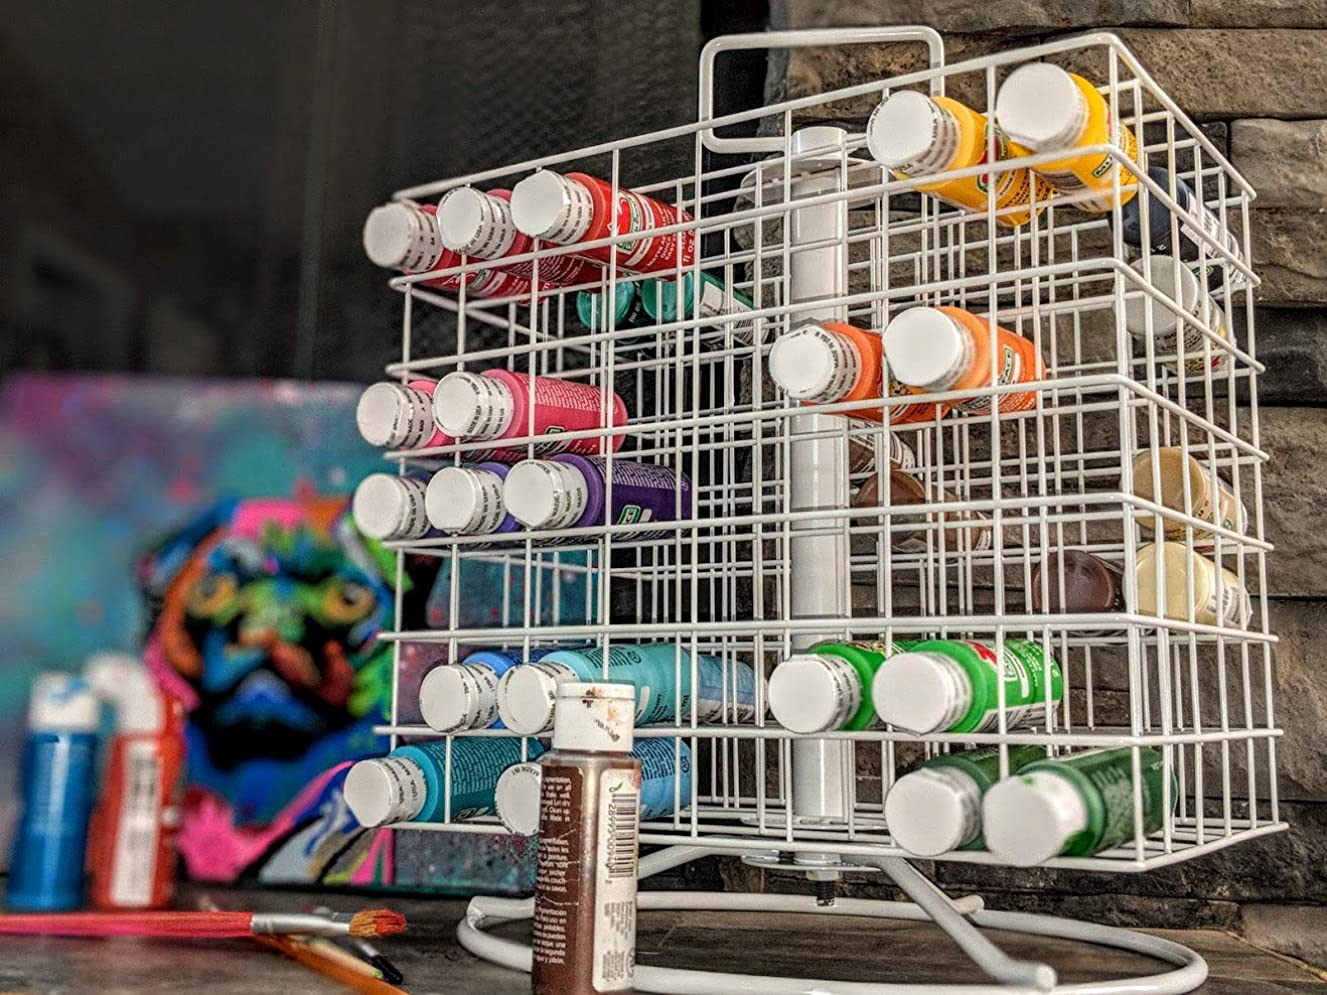 Craft Paint Storage Rack For 2oz Acrylic Paints, Revolving Acrylic Craft Paint Coated-Wire Caddy, Holds 112 2-Ounce Bottles, Portable